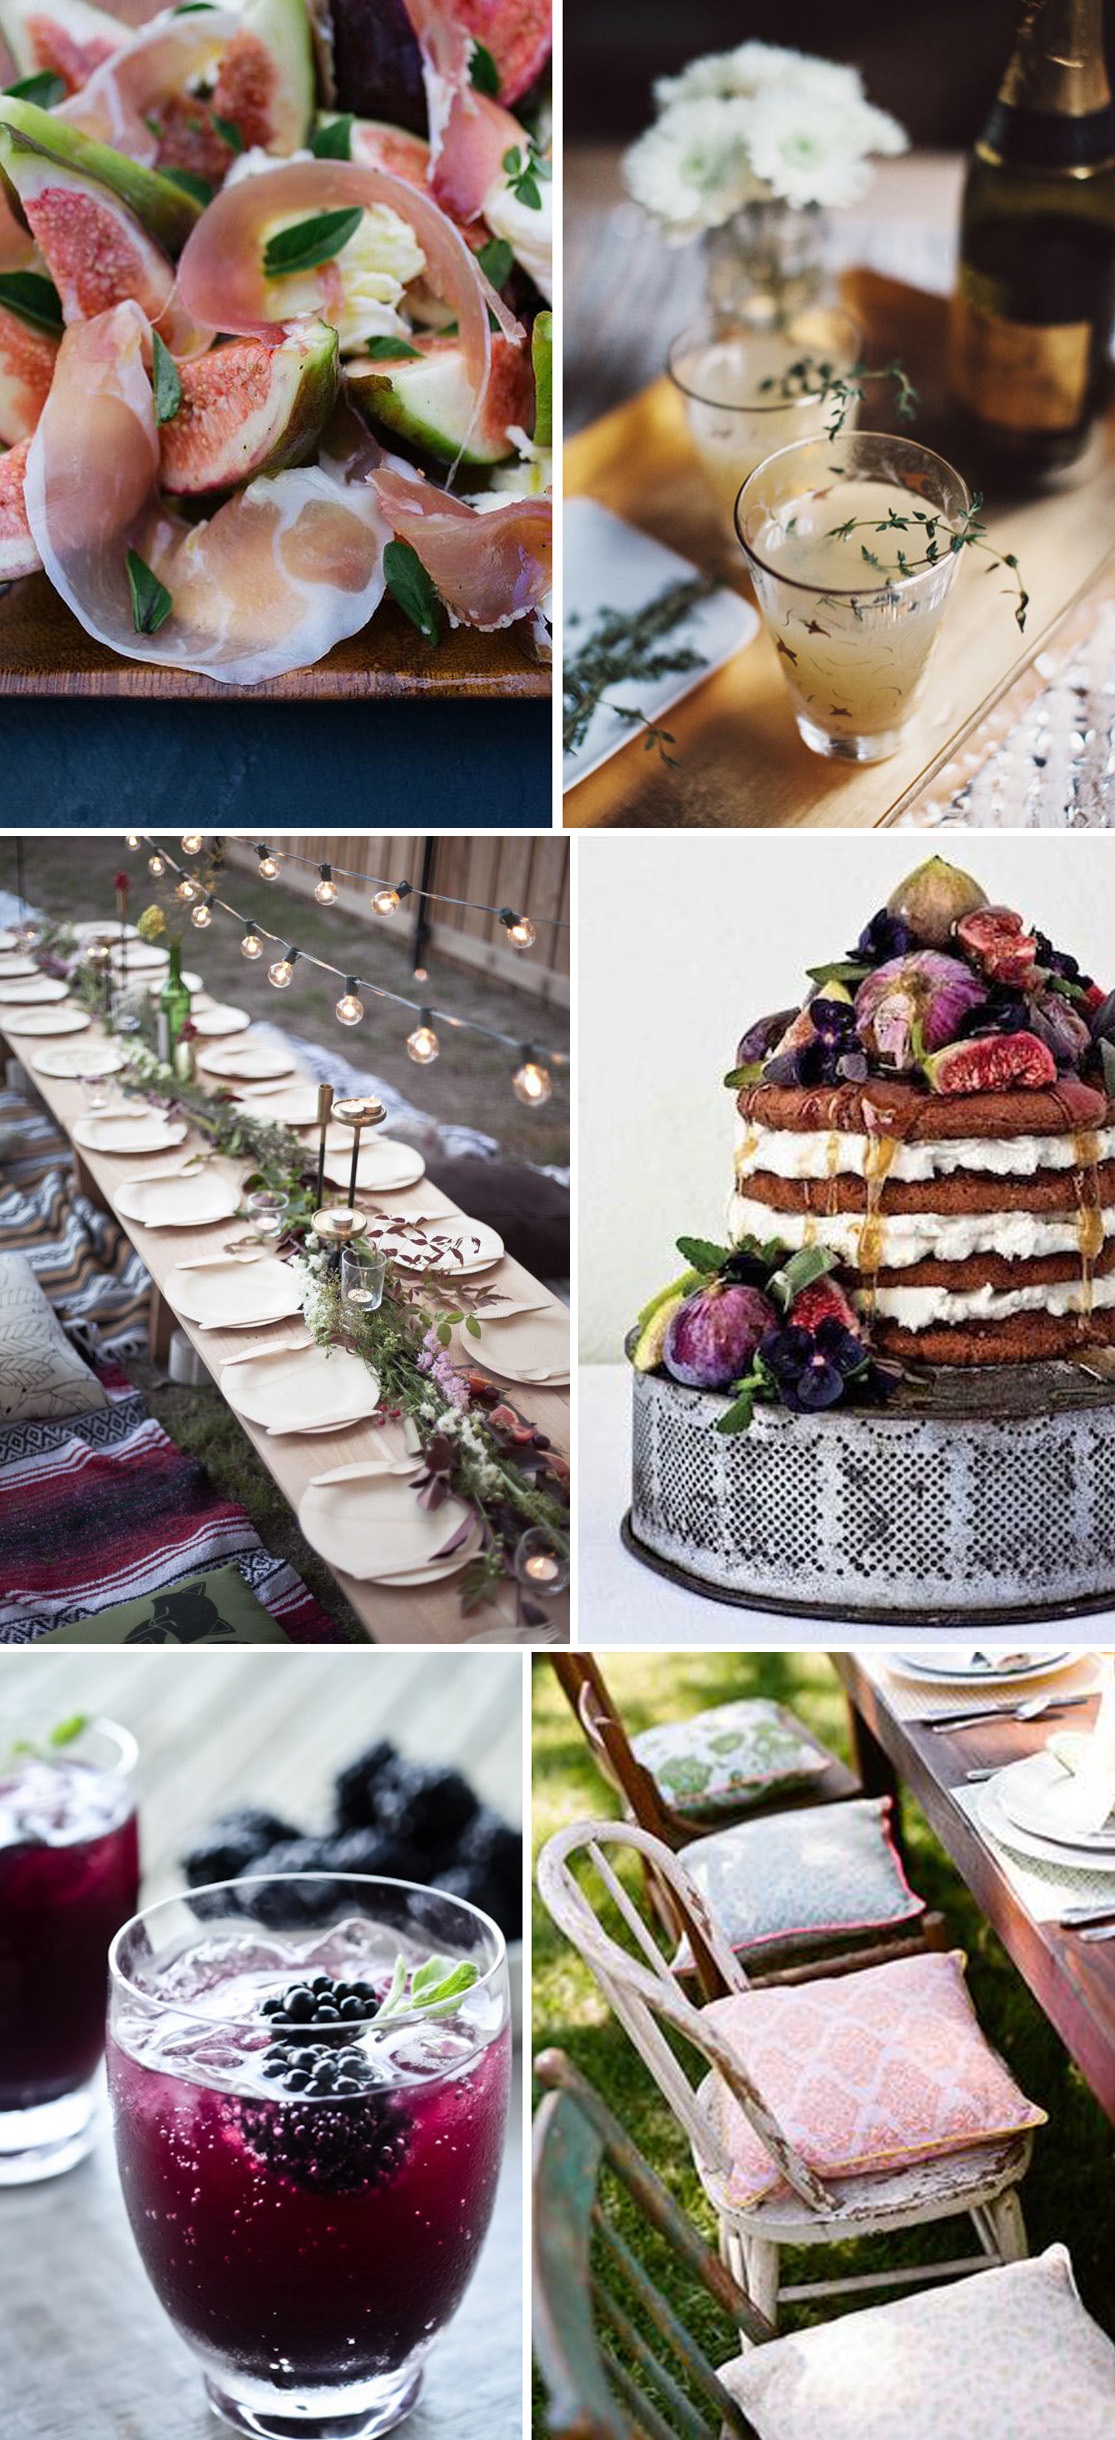 Coco Wedding Venues, Bohemian Beats, Style Category, The Feast.